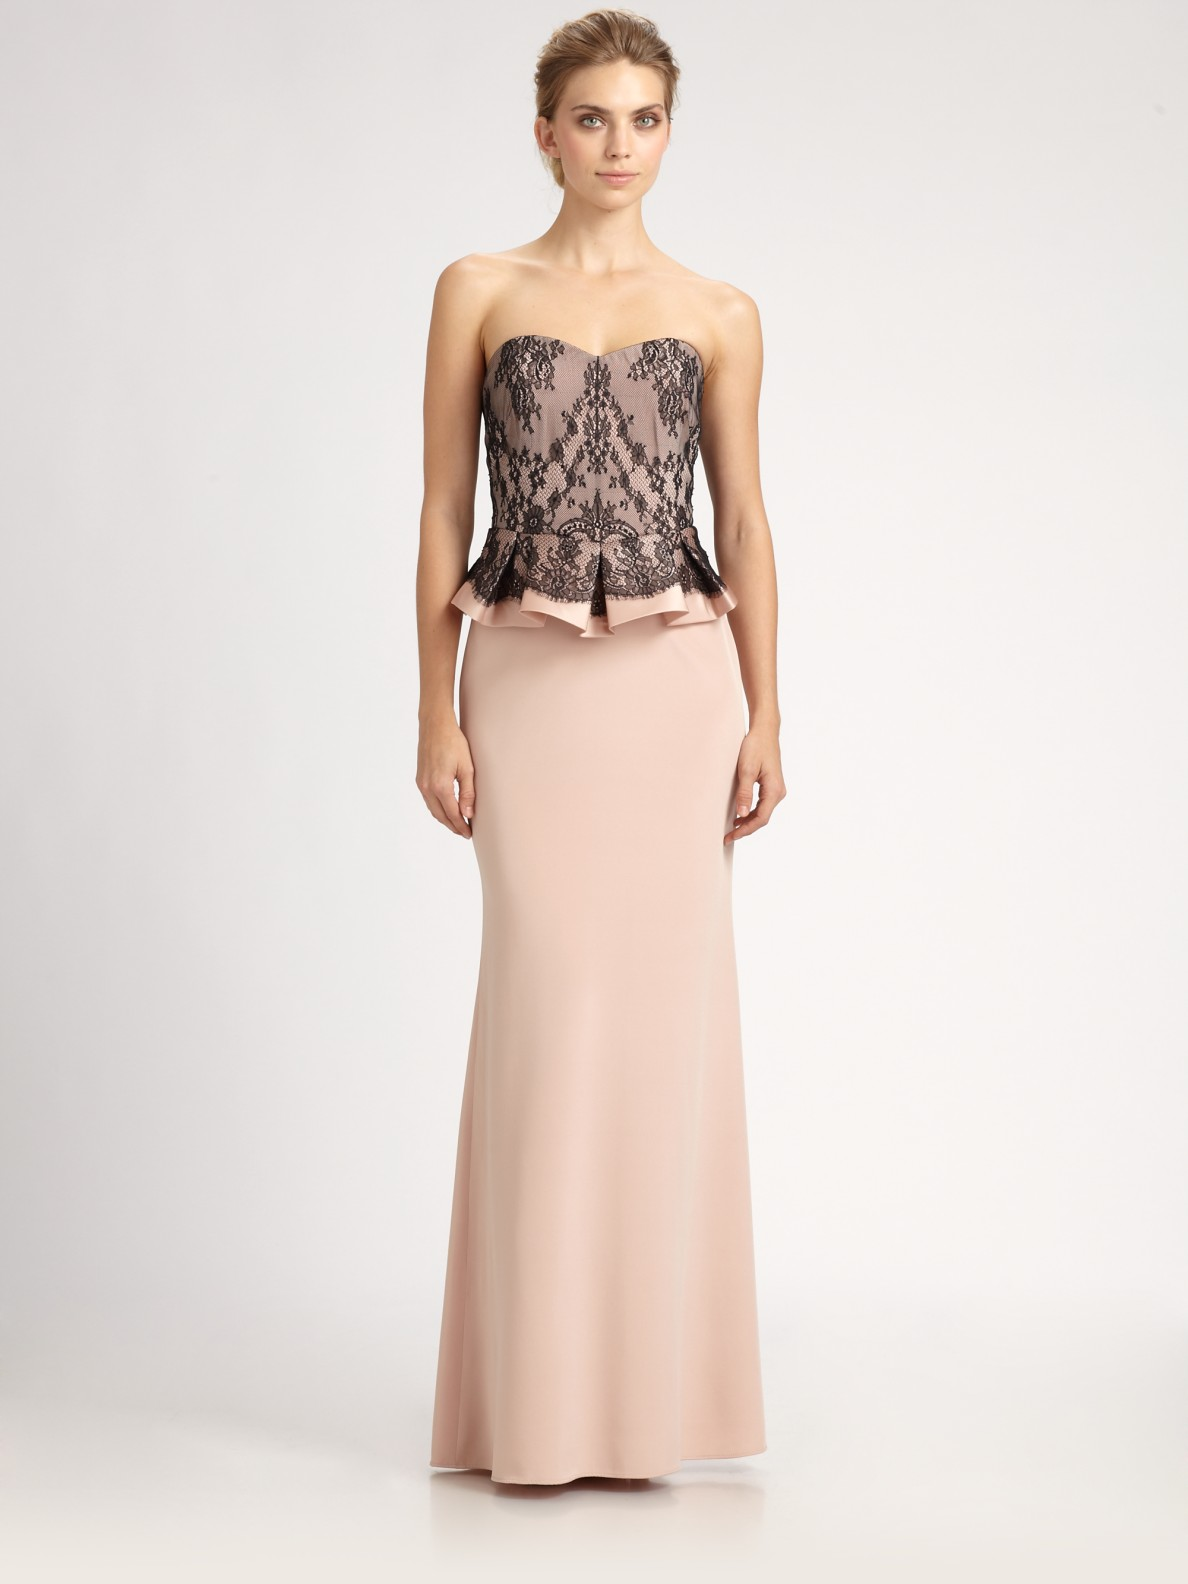 8f063d616b Notte By Marchesa Strapless Lace Gown With Peplum In Pink ...